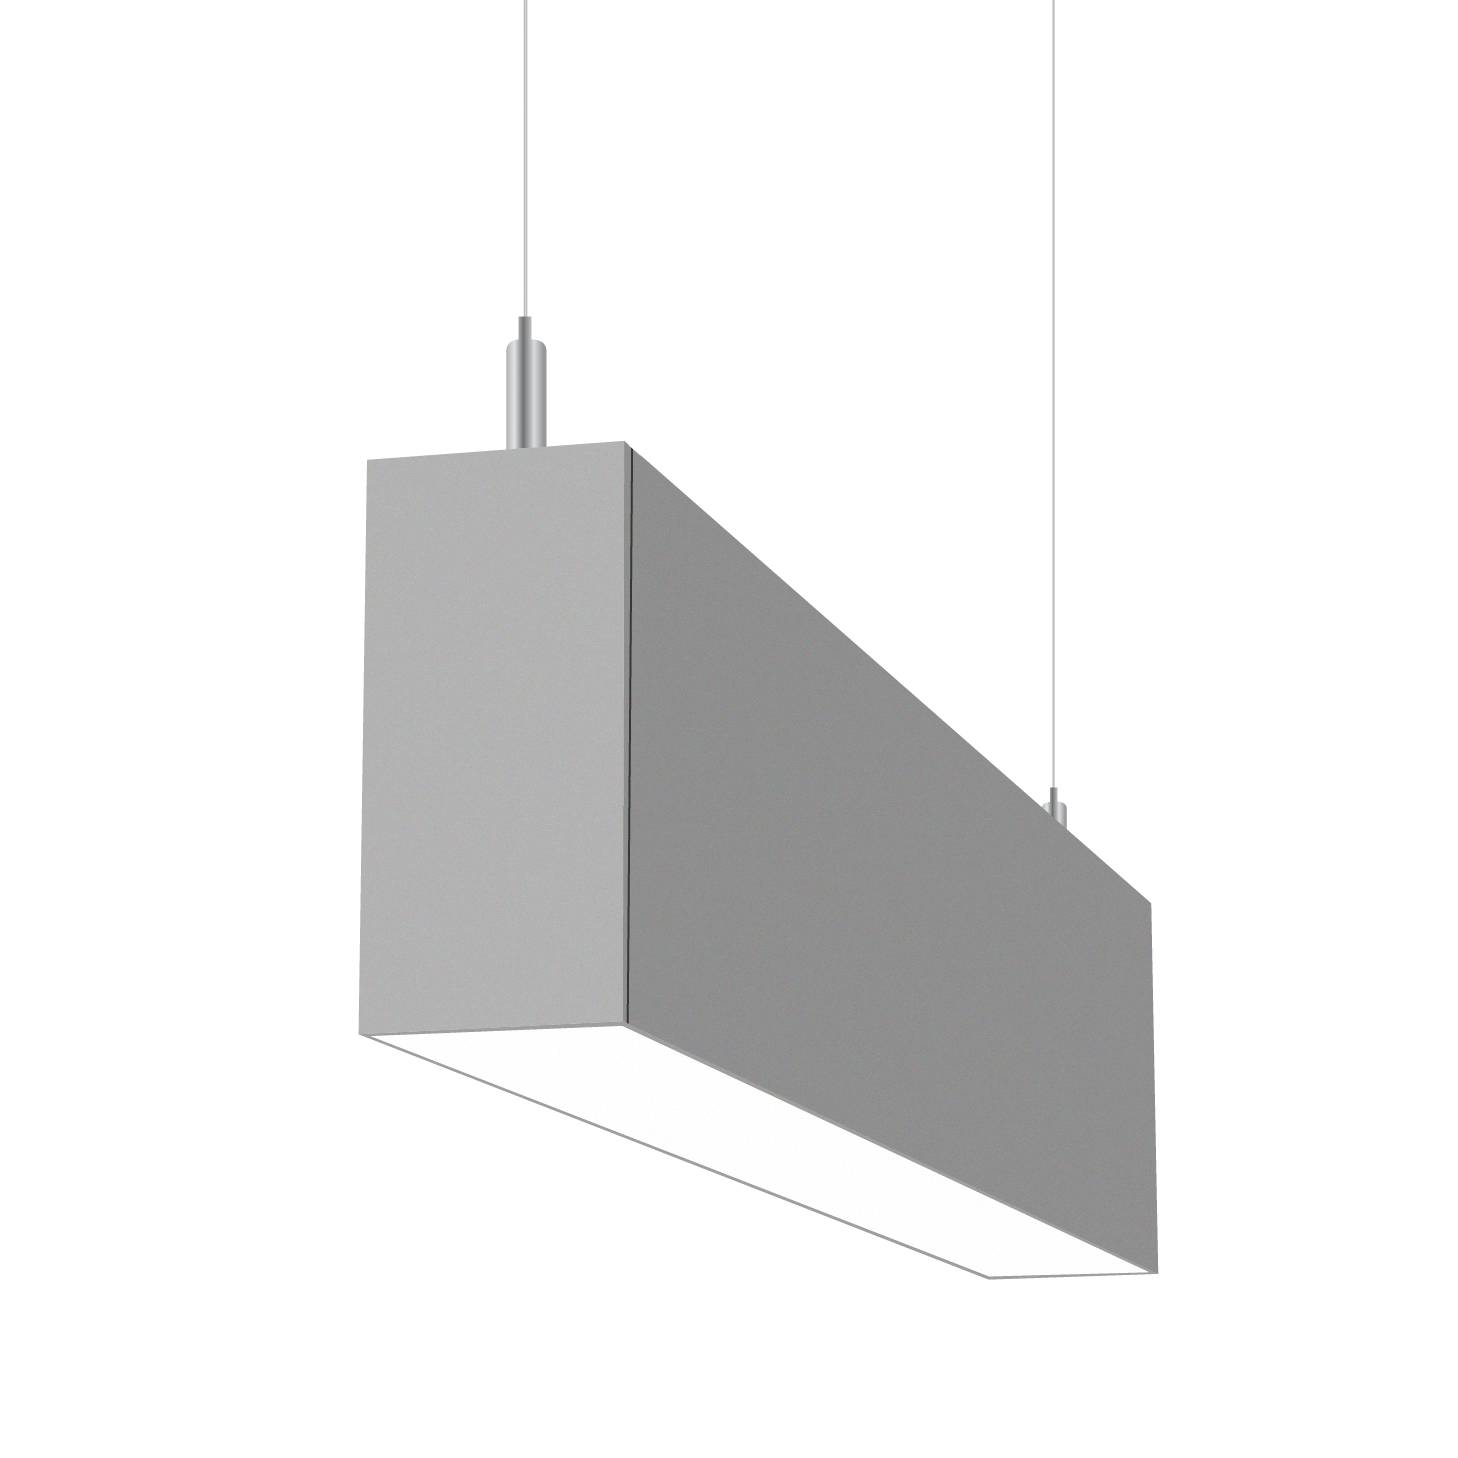 Alcon lighting 14070 8 illumine 8 foot architectural 5 channel color reviews arubaitofo Images